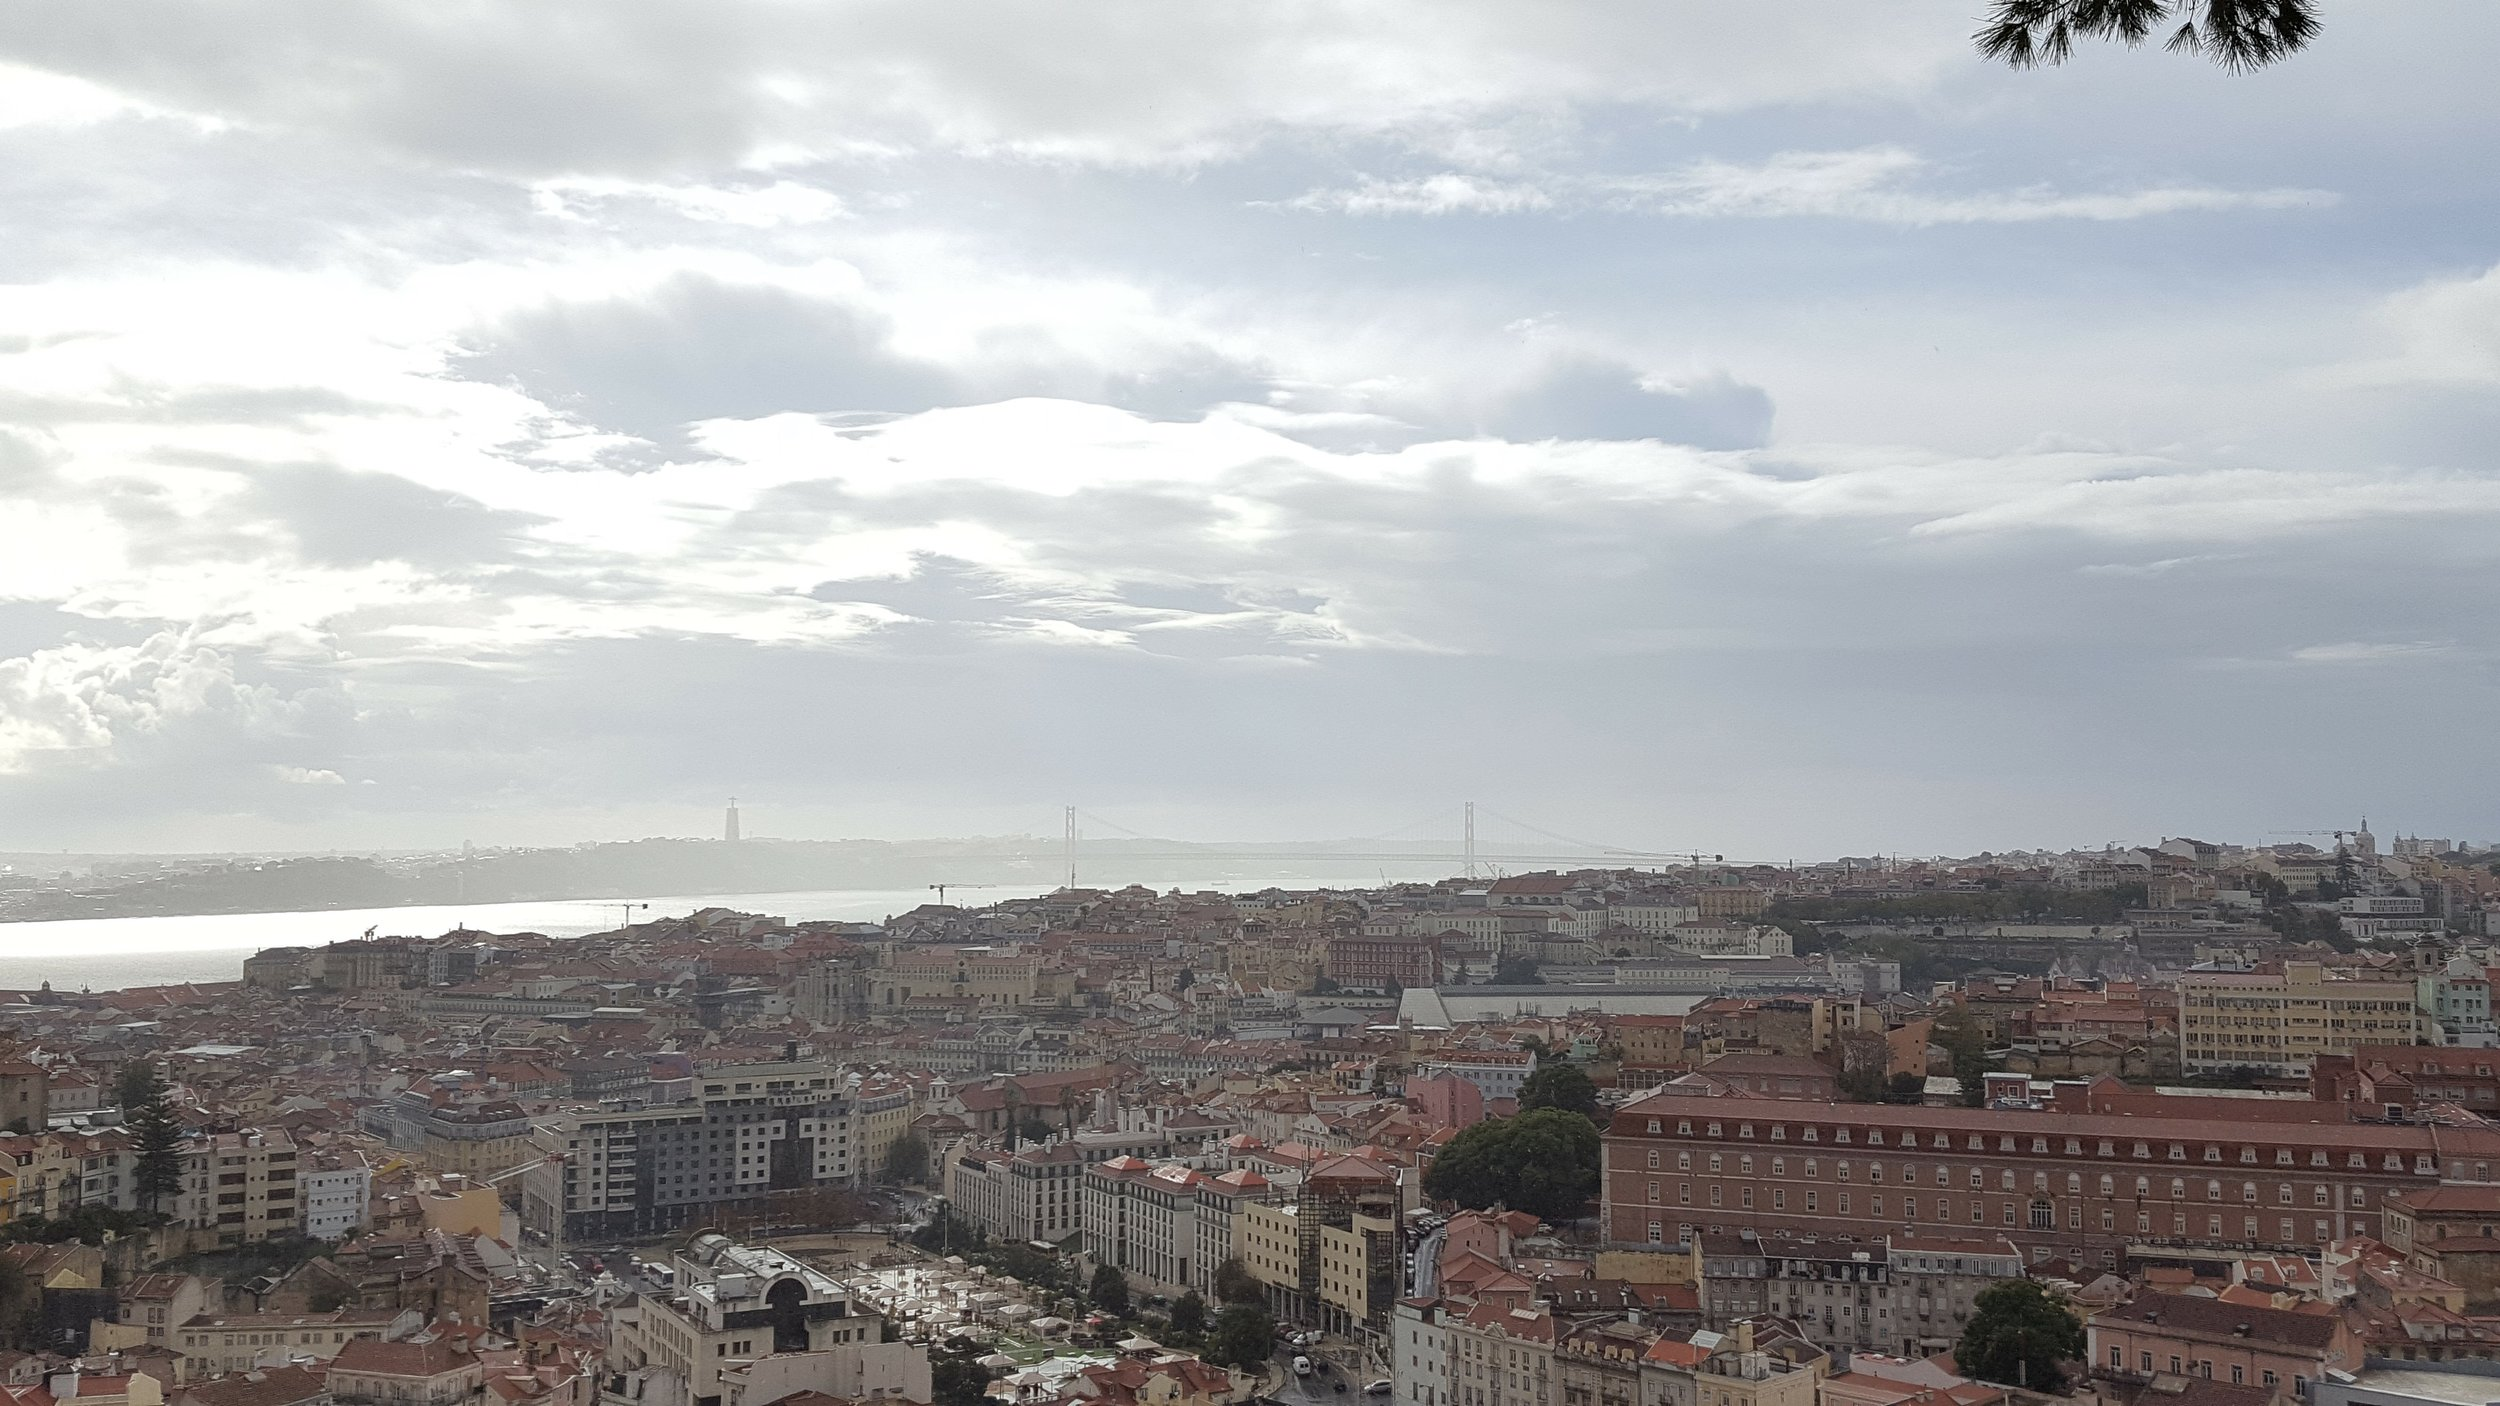 The view from Castelo de São Jorge, with the bridge in the distance